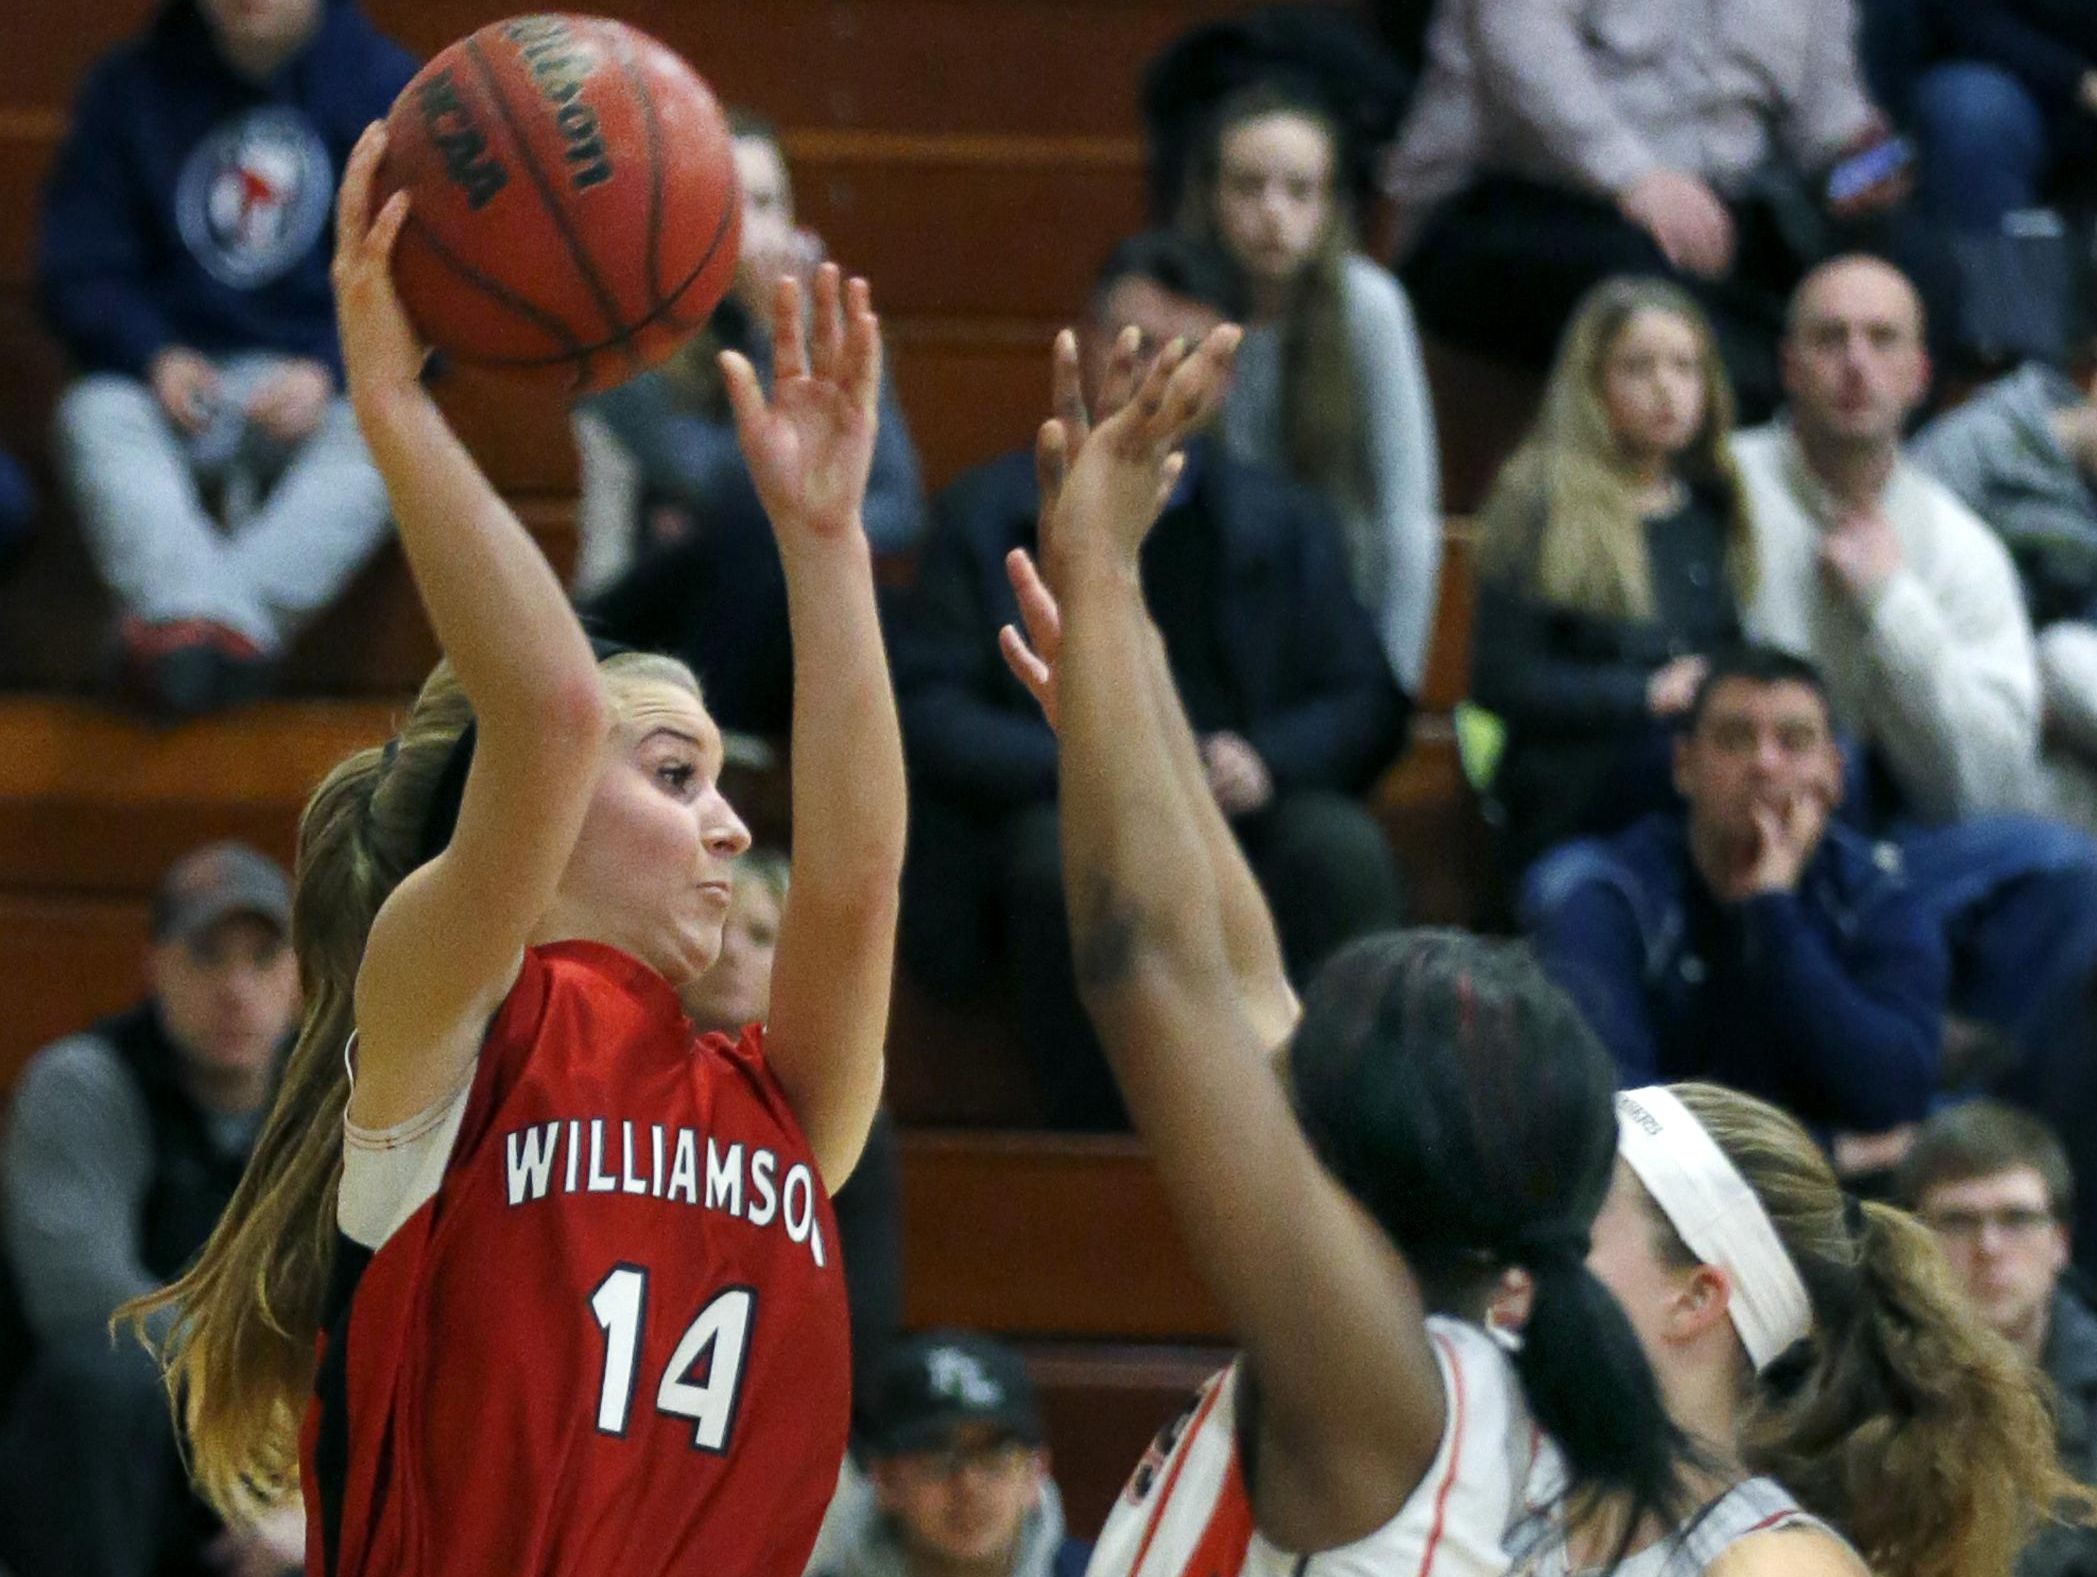 Williamson's Alivia Ginther passes over East Rochester players during the fourth quarter Wednesday at East Rochester High School. East Rochester won, 62-46.